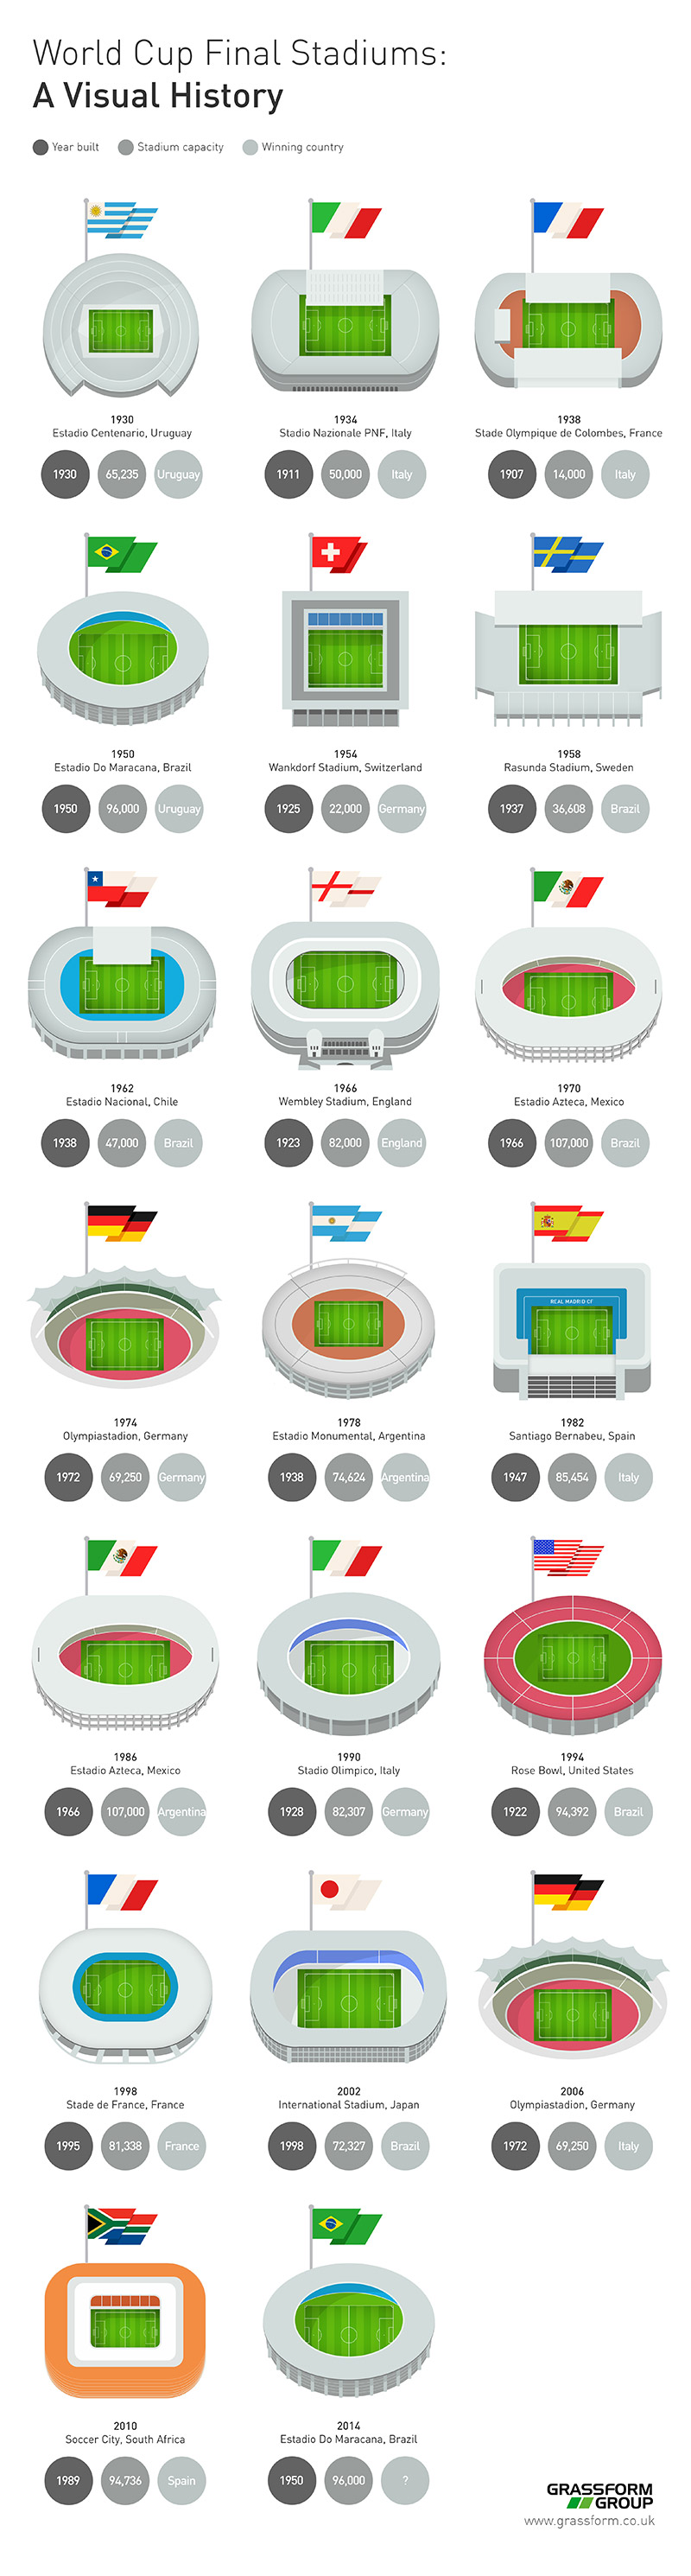 World Cup Final Stadiums by Grassform Group